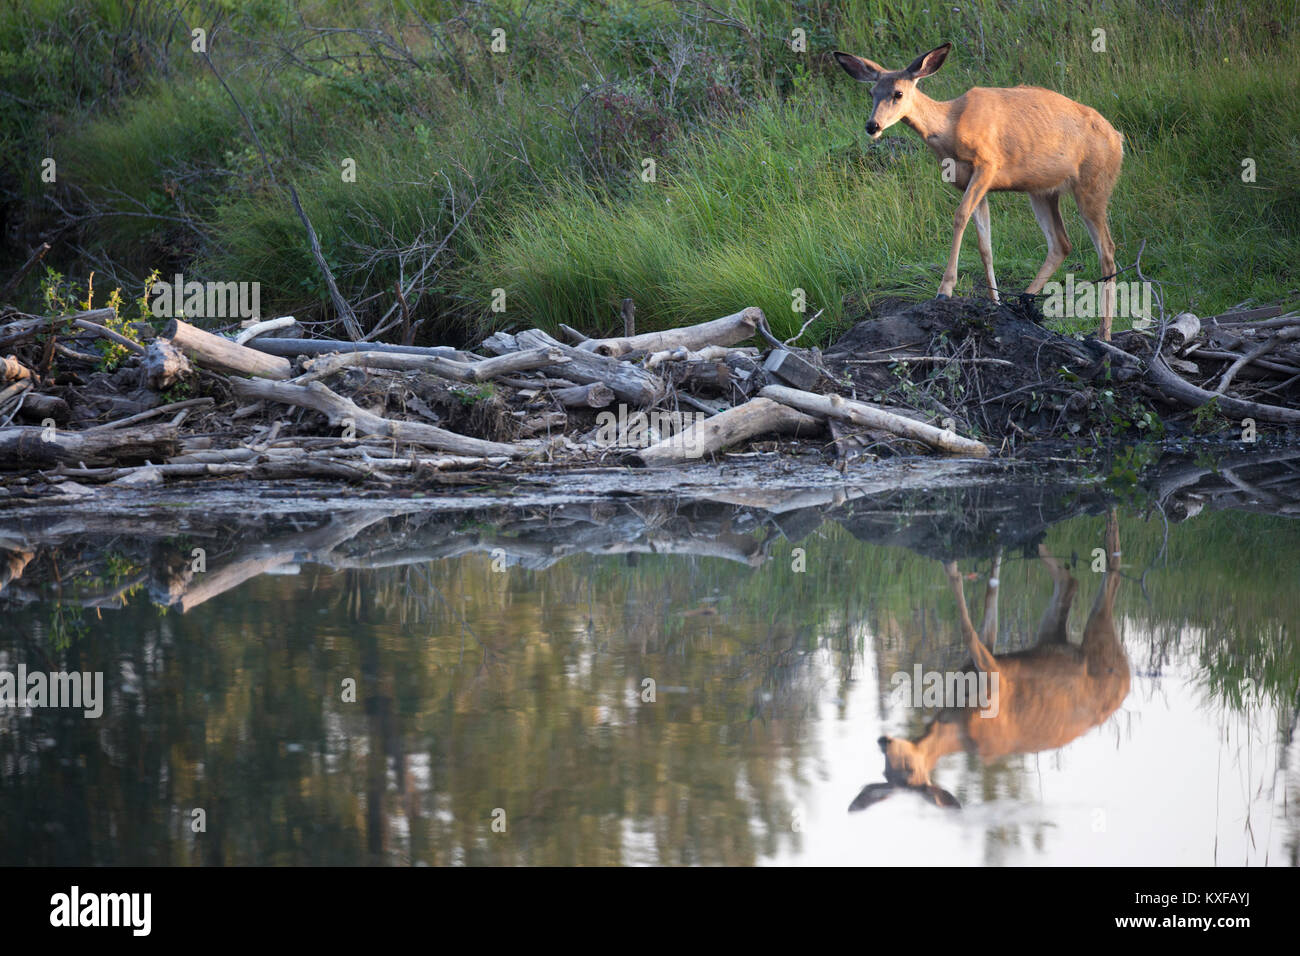 Mule Deer walking across beaver pond (Odocoileus hemionus) - Stock Image